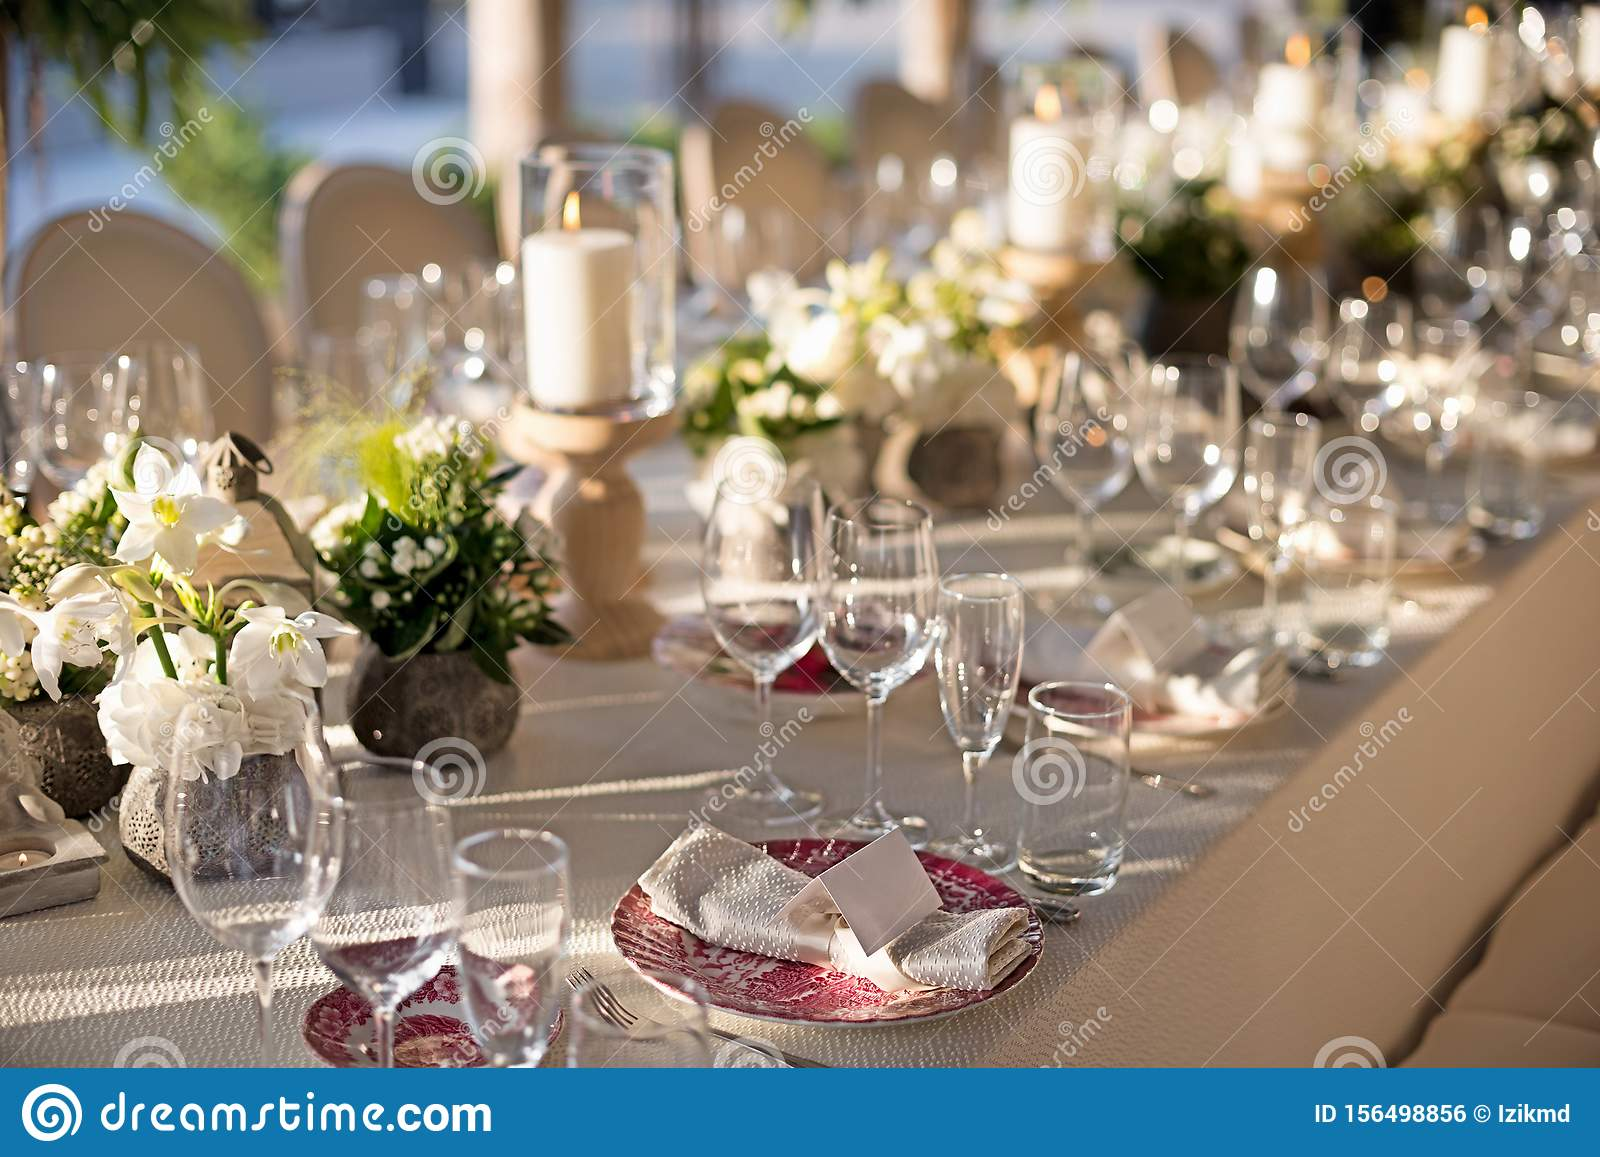 Outdoor Wedding Celebration At A Restaurant Festive Table Setting Catering Wedding In Rustic Style In Summer Stock Photo Image Of Catering Lamp 156498856